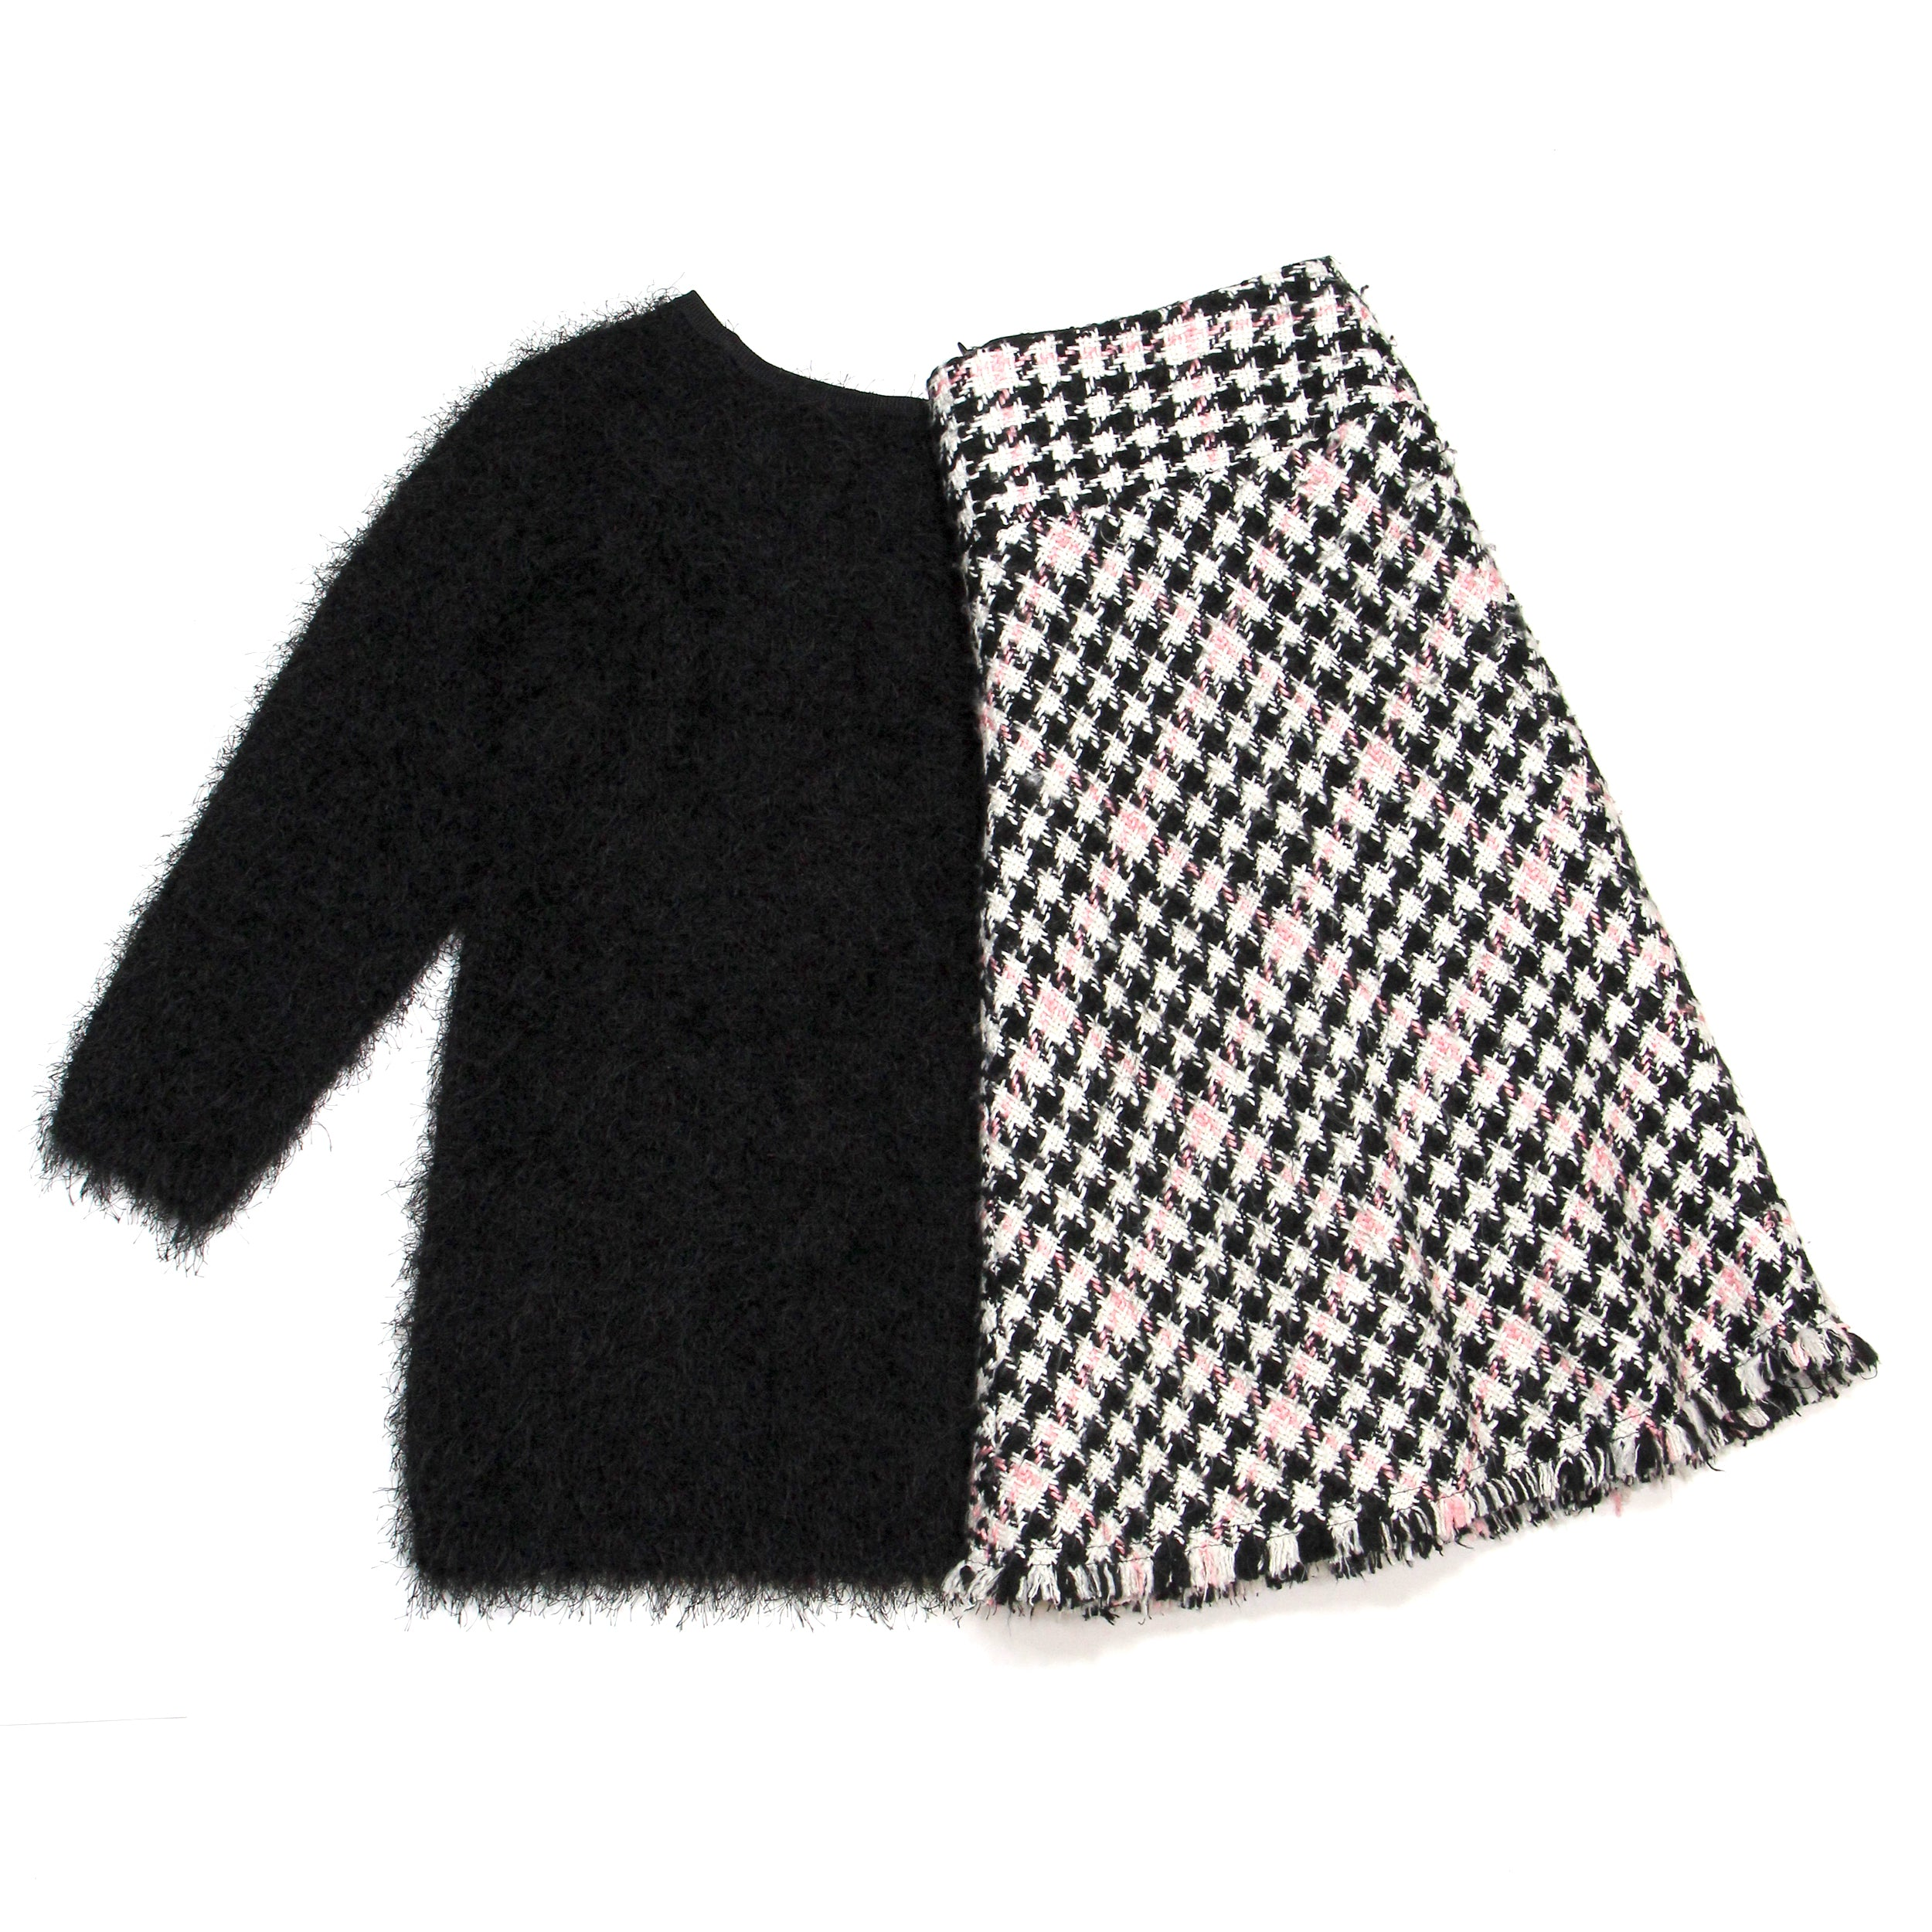 I.N.C Plaid Skirt Black and Pink Size 6